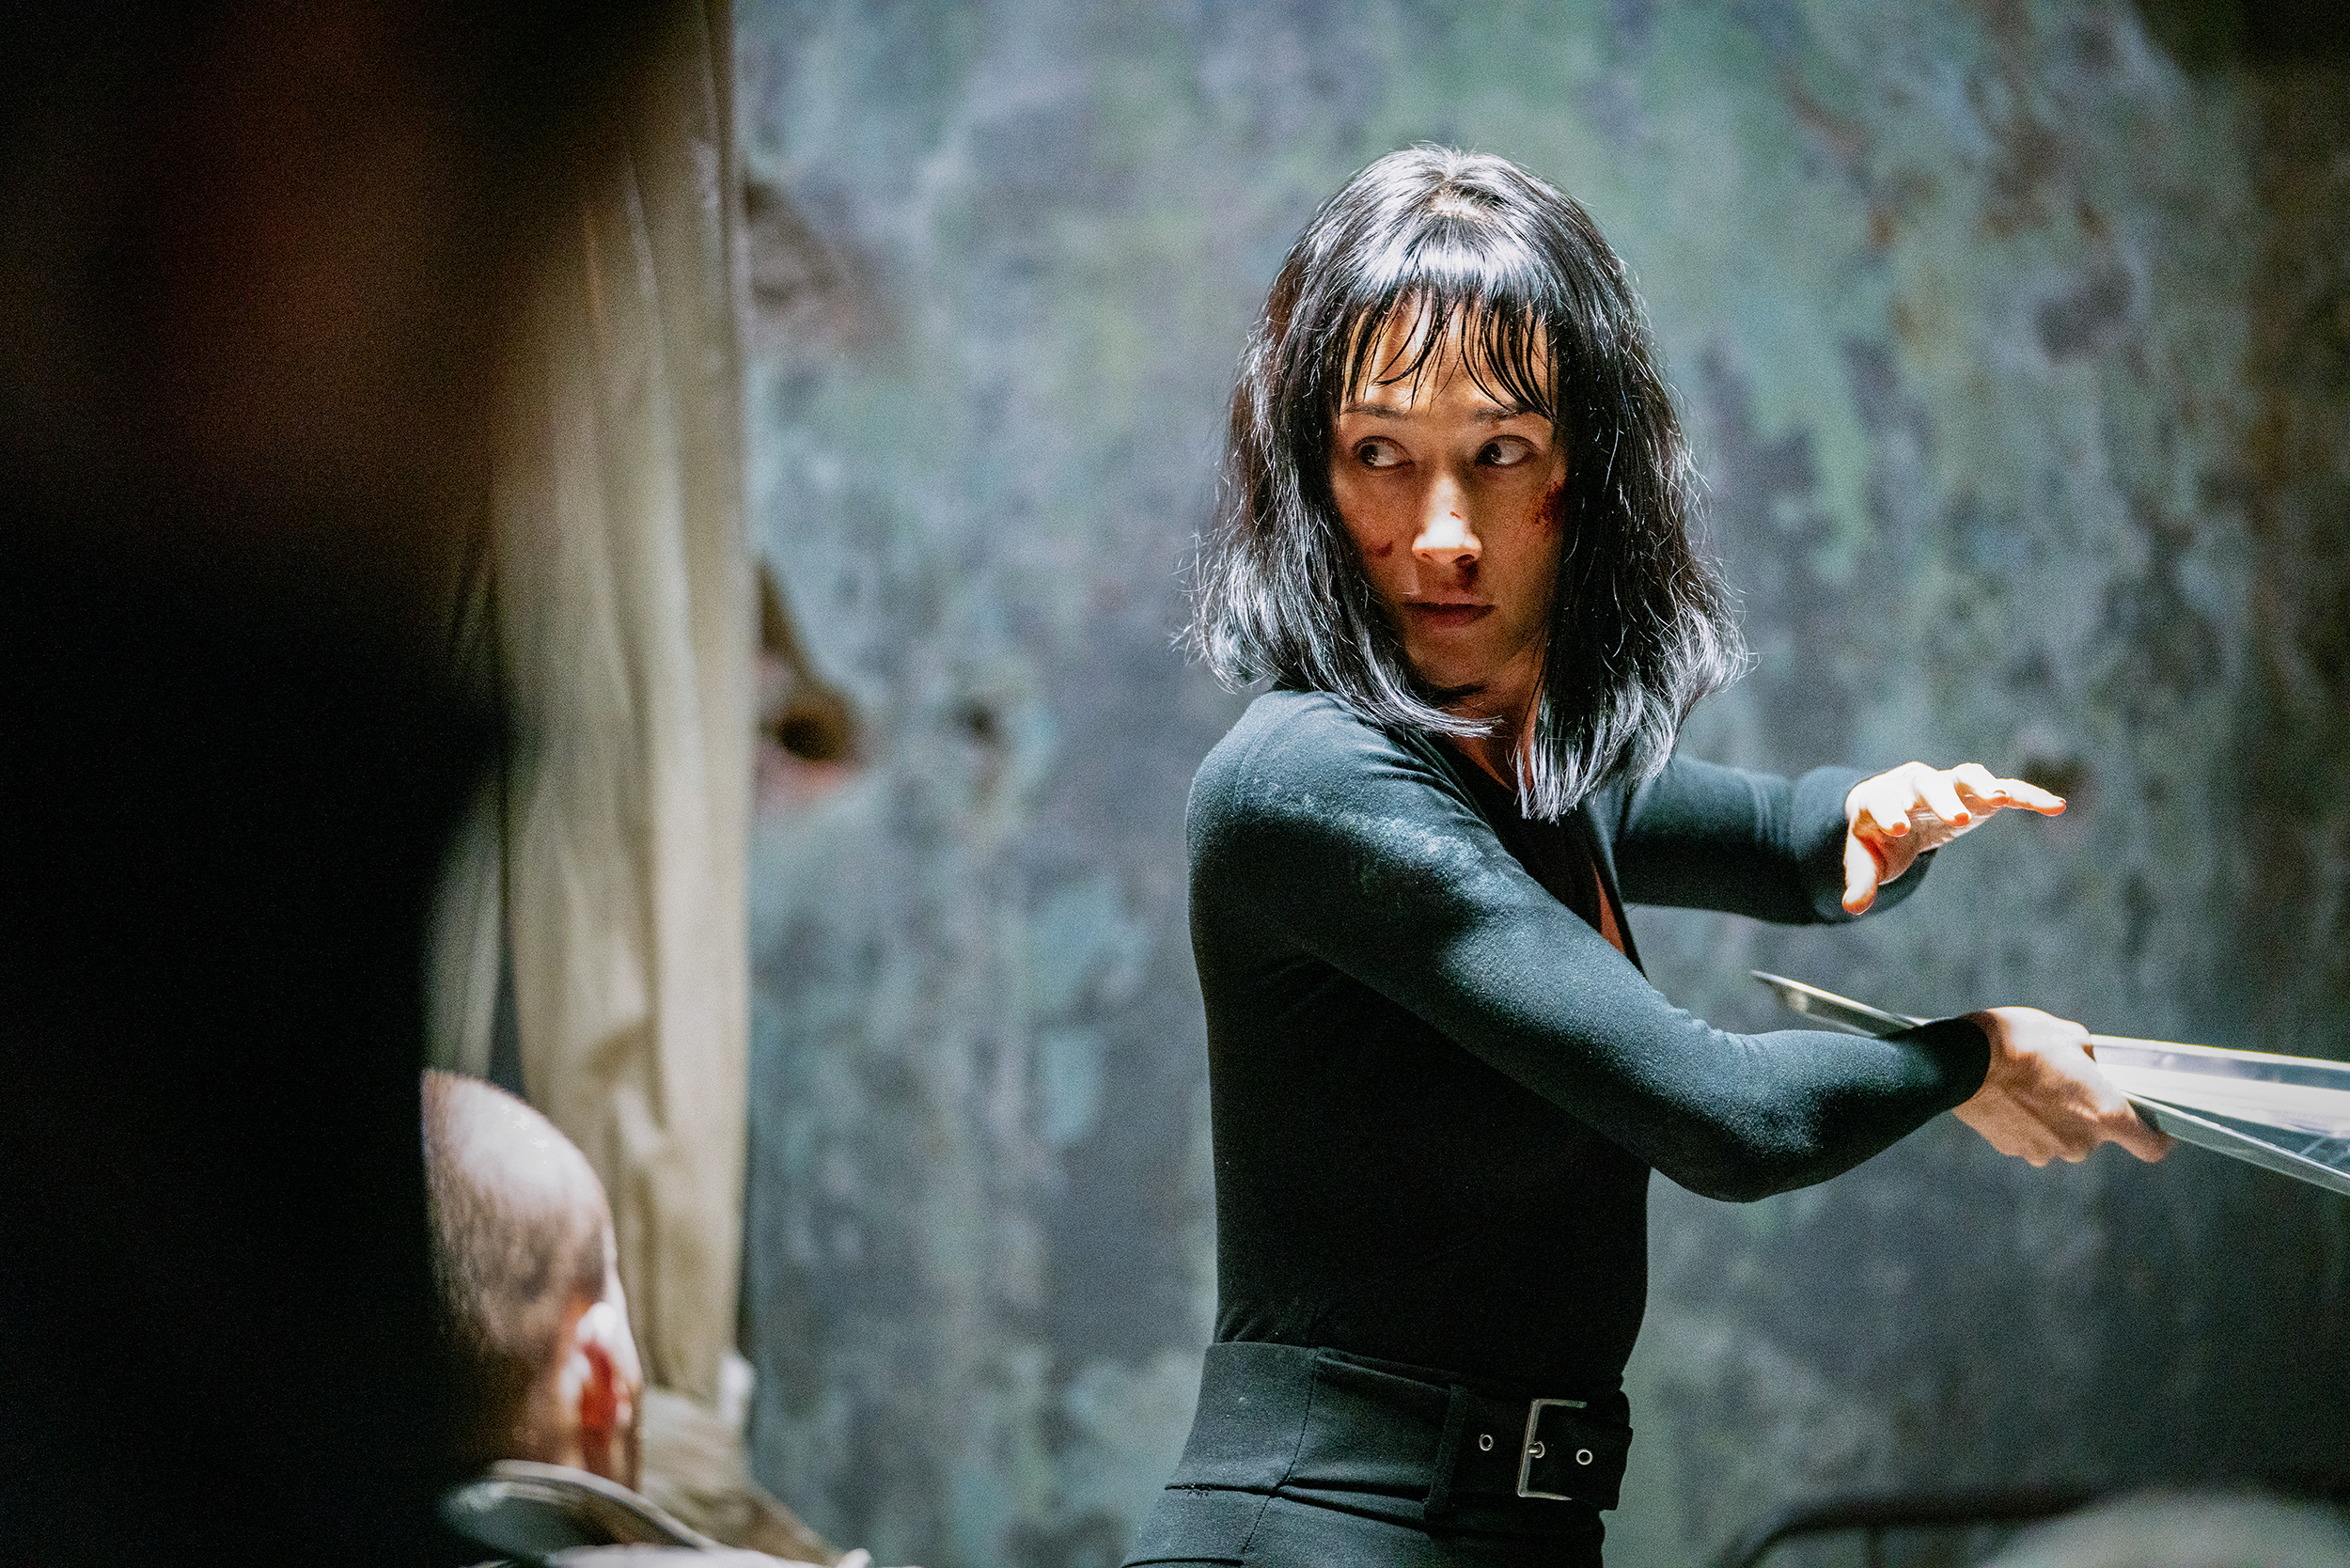 Jackie Chan saw her potential as an action star. His intensive training defined her career.